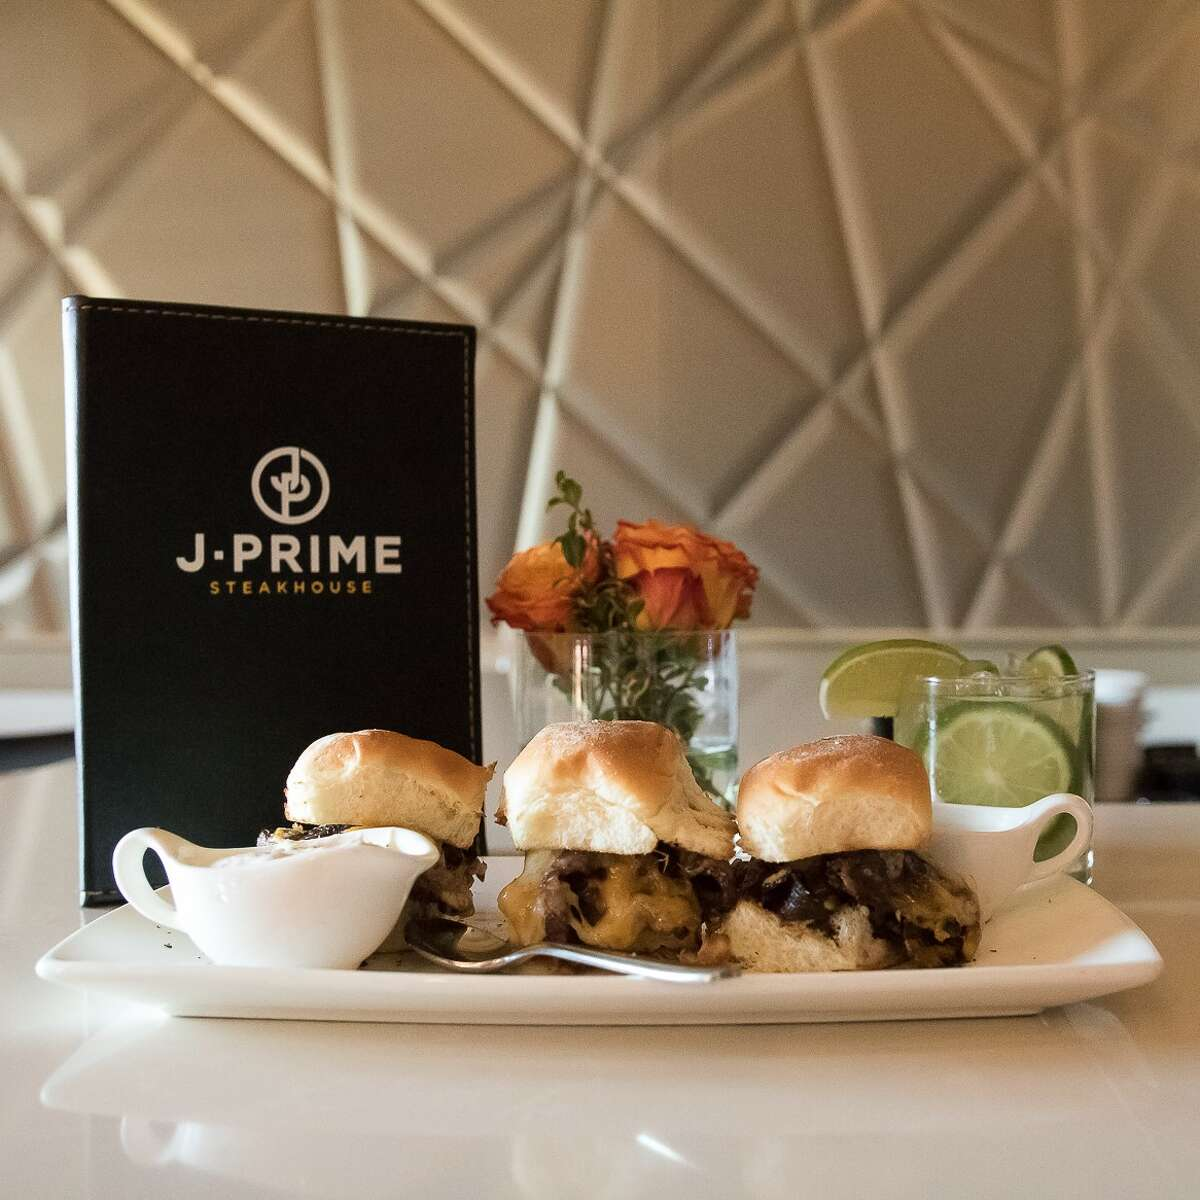 Prime rib sliders at J-Prime Steakhouse.